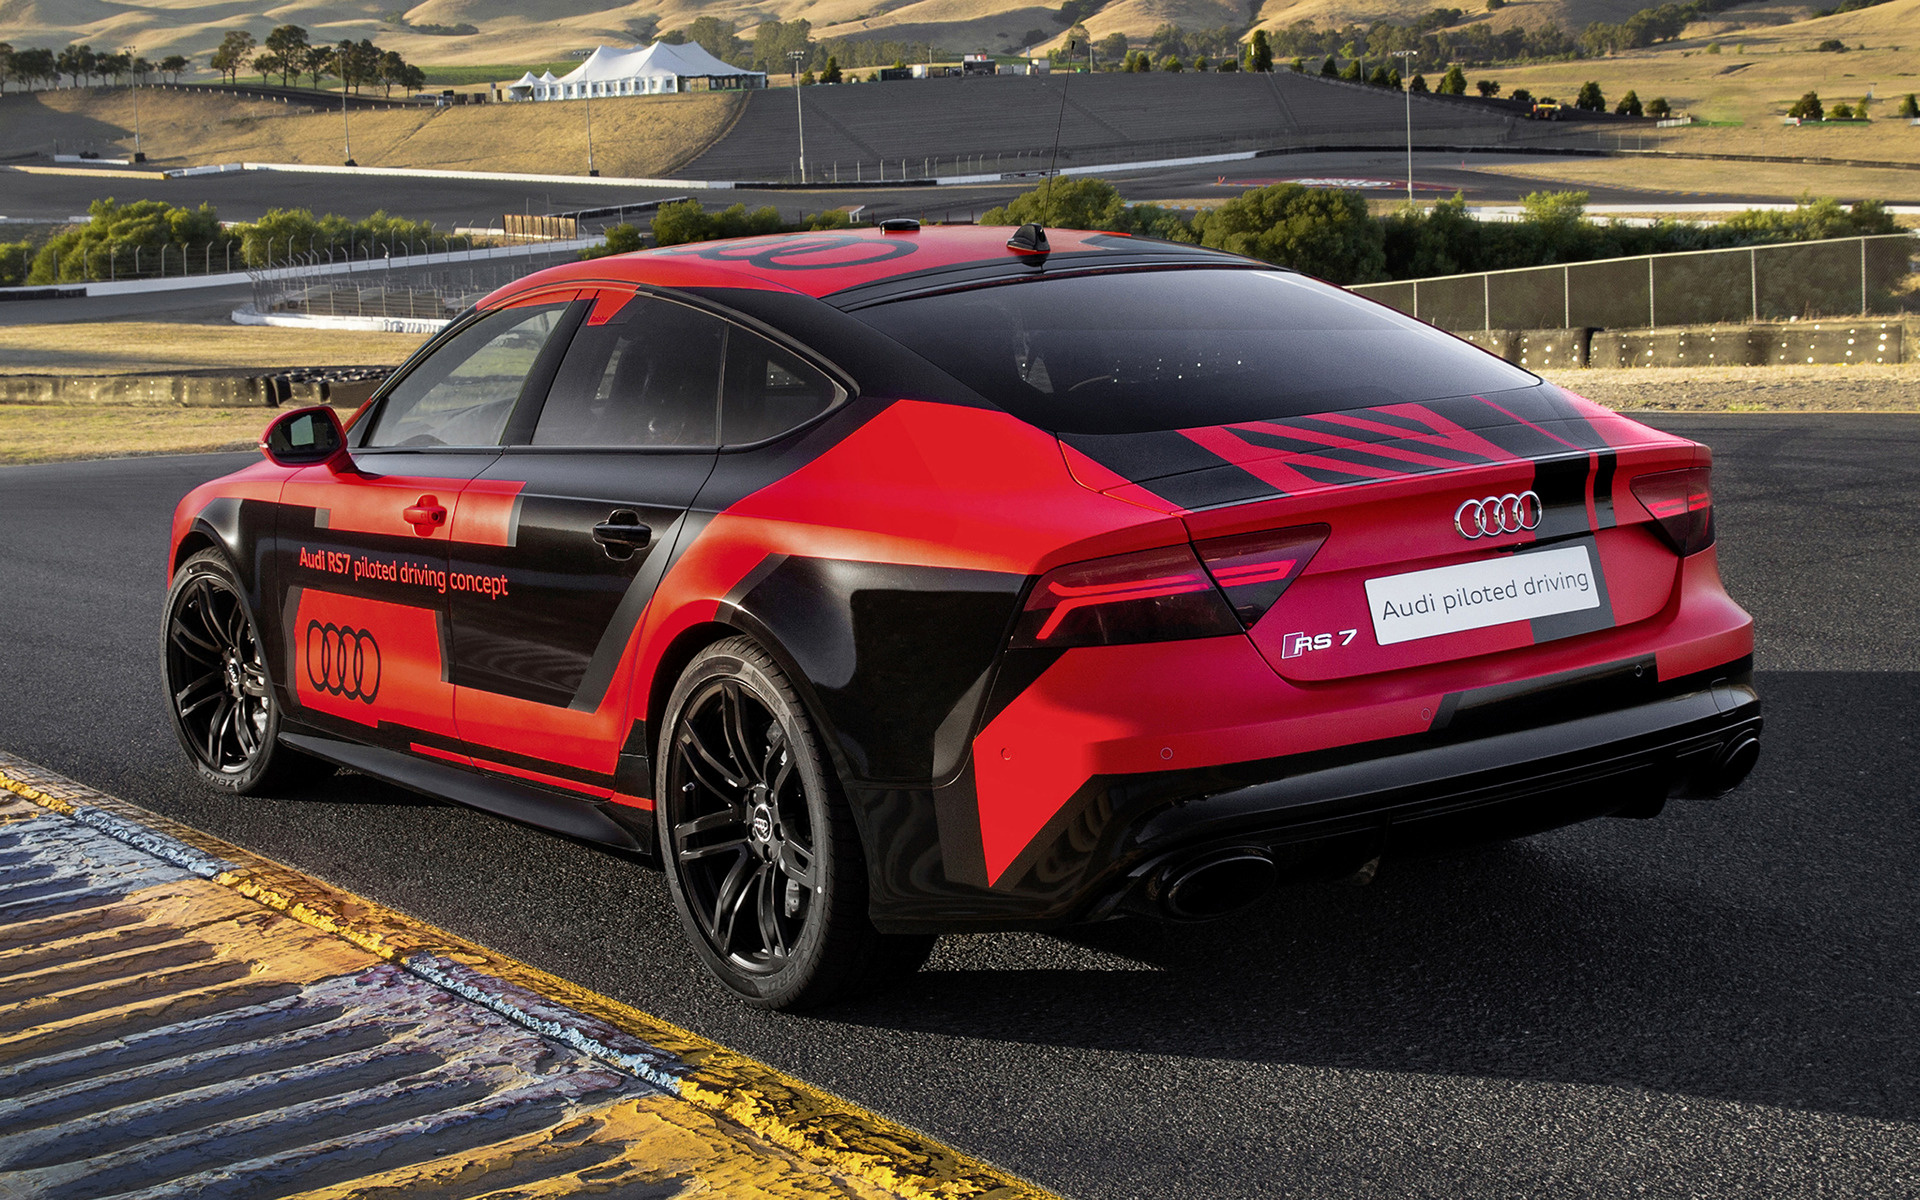 Audi RS 7 Sportback piloted driving concept 2015 Wallpapers and HD